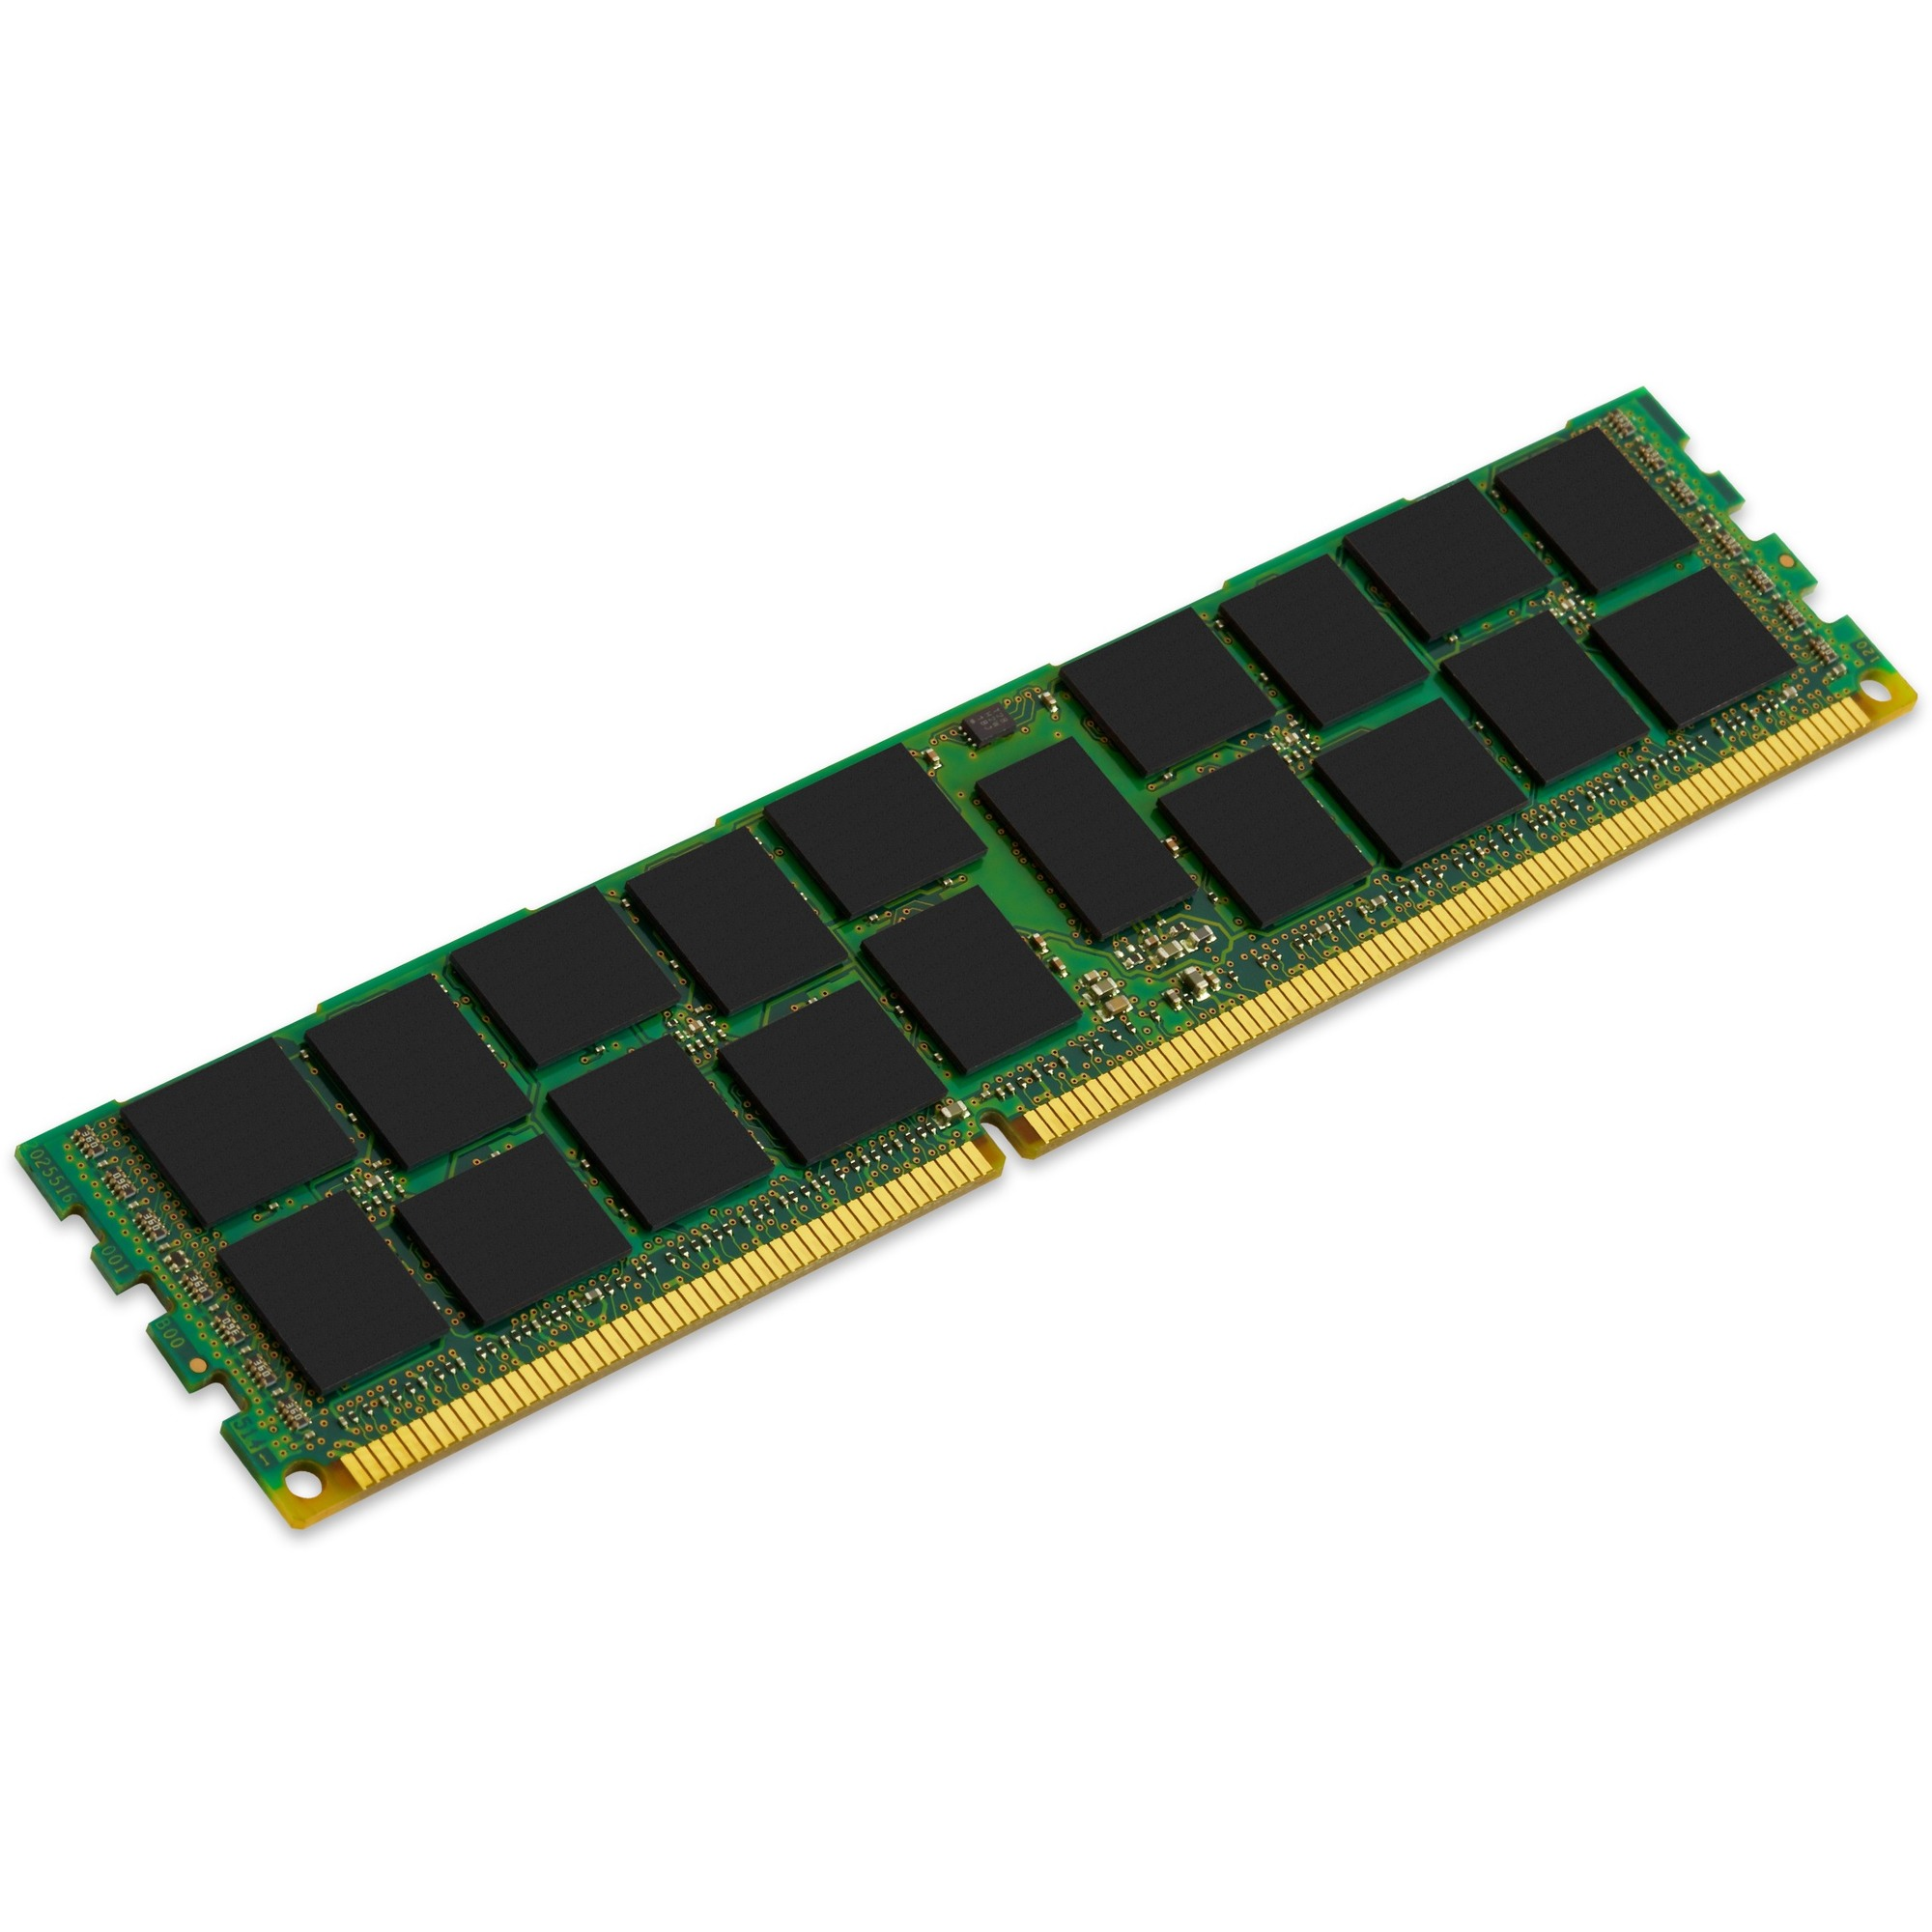 Kingston RAM Module - 16 GB 1 x 16 GB - DDR3 SDRAM - 1600 MHz DDR3-1600/PC3-12800 - 1.50 V - ECC - Registered - CL11 - 240-pin - DIMM